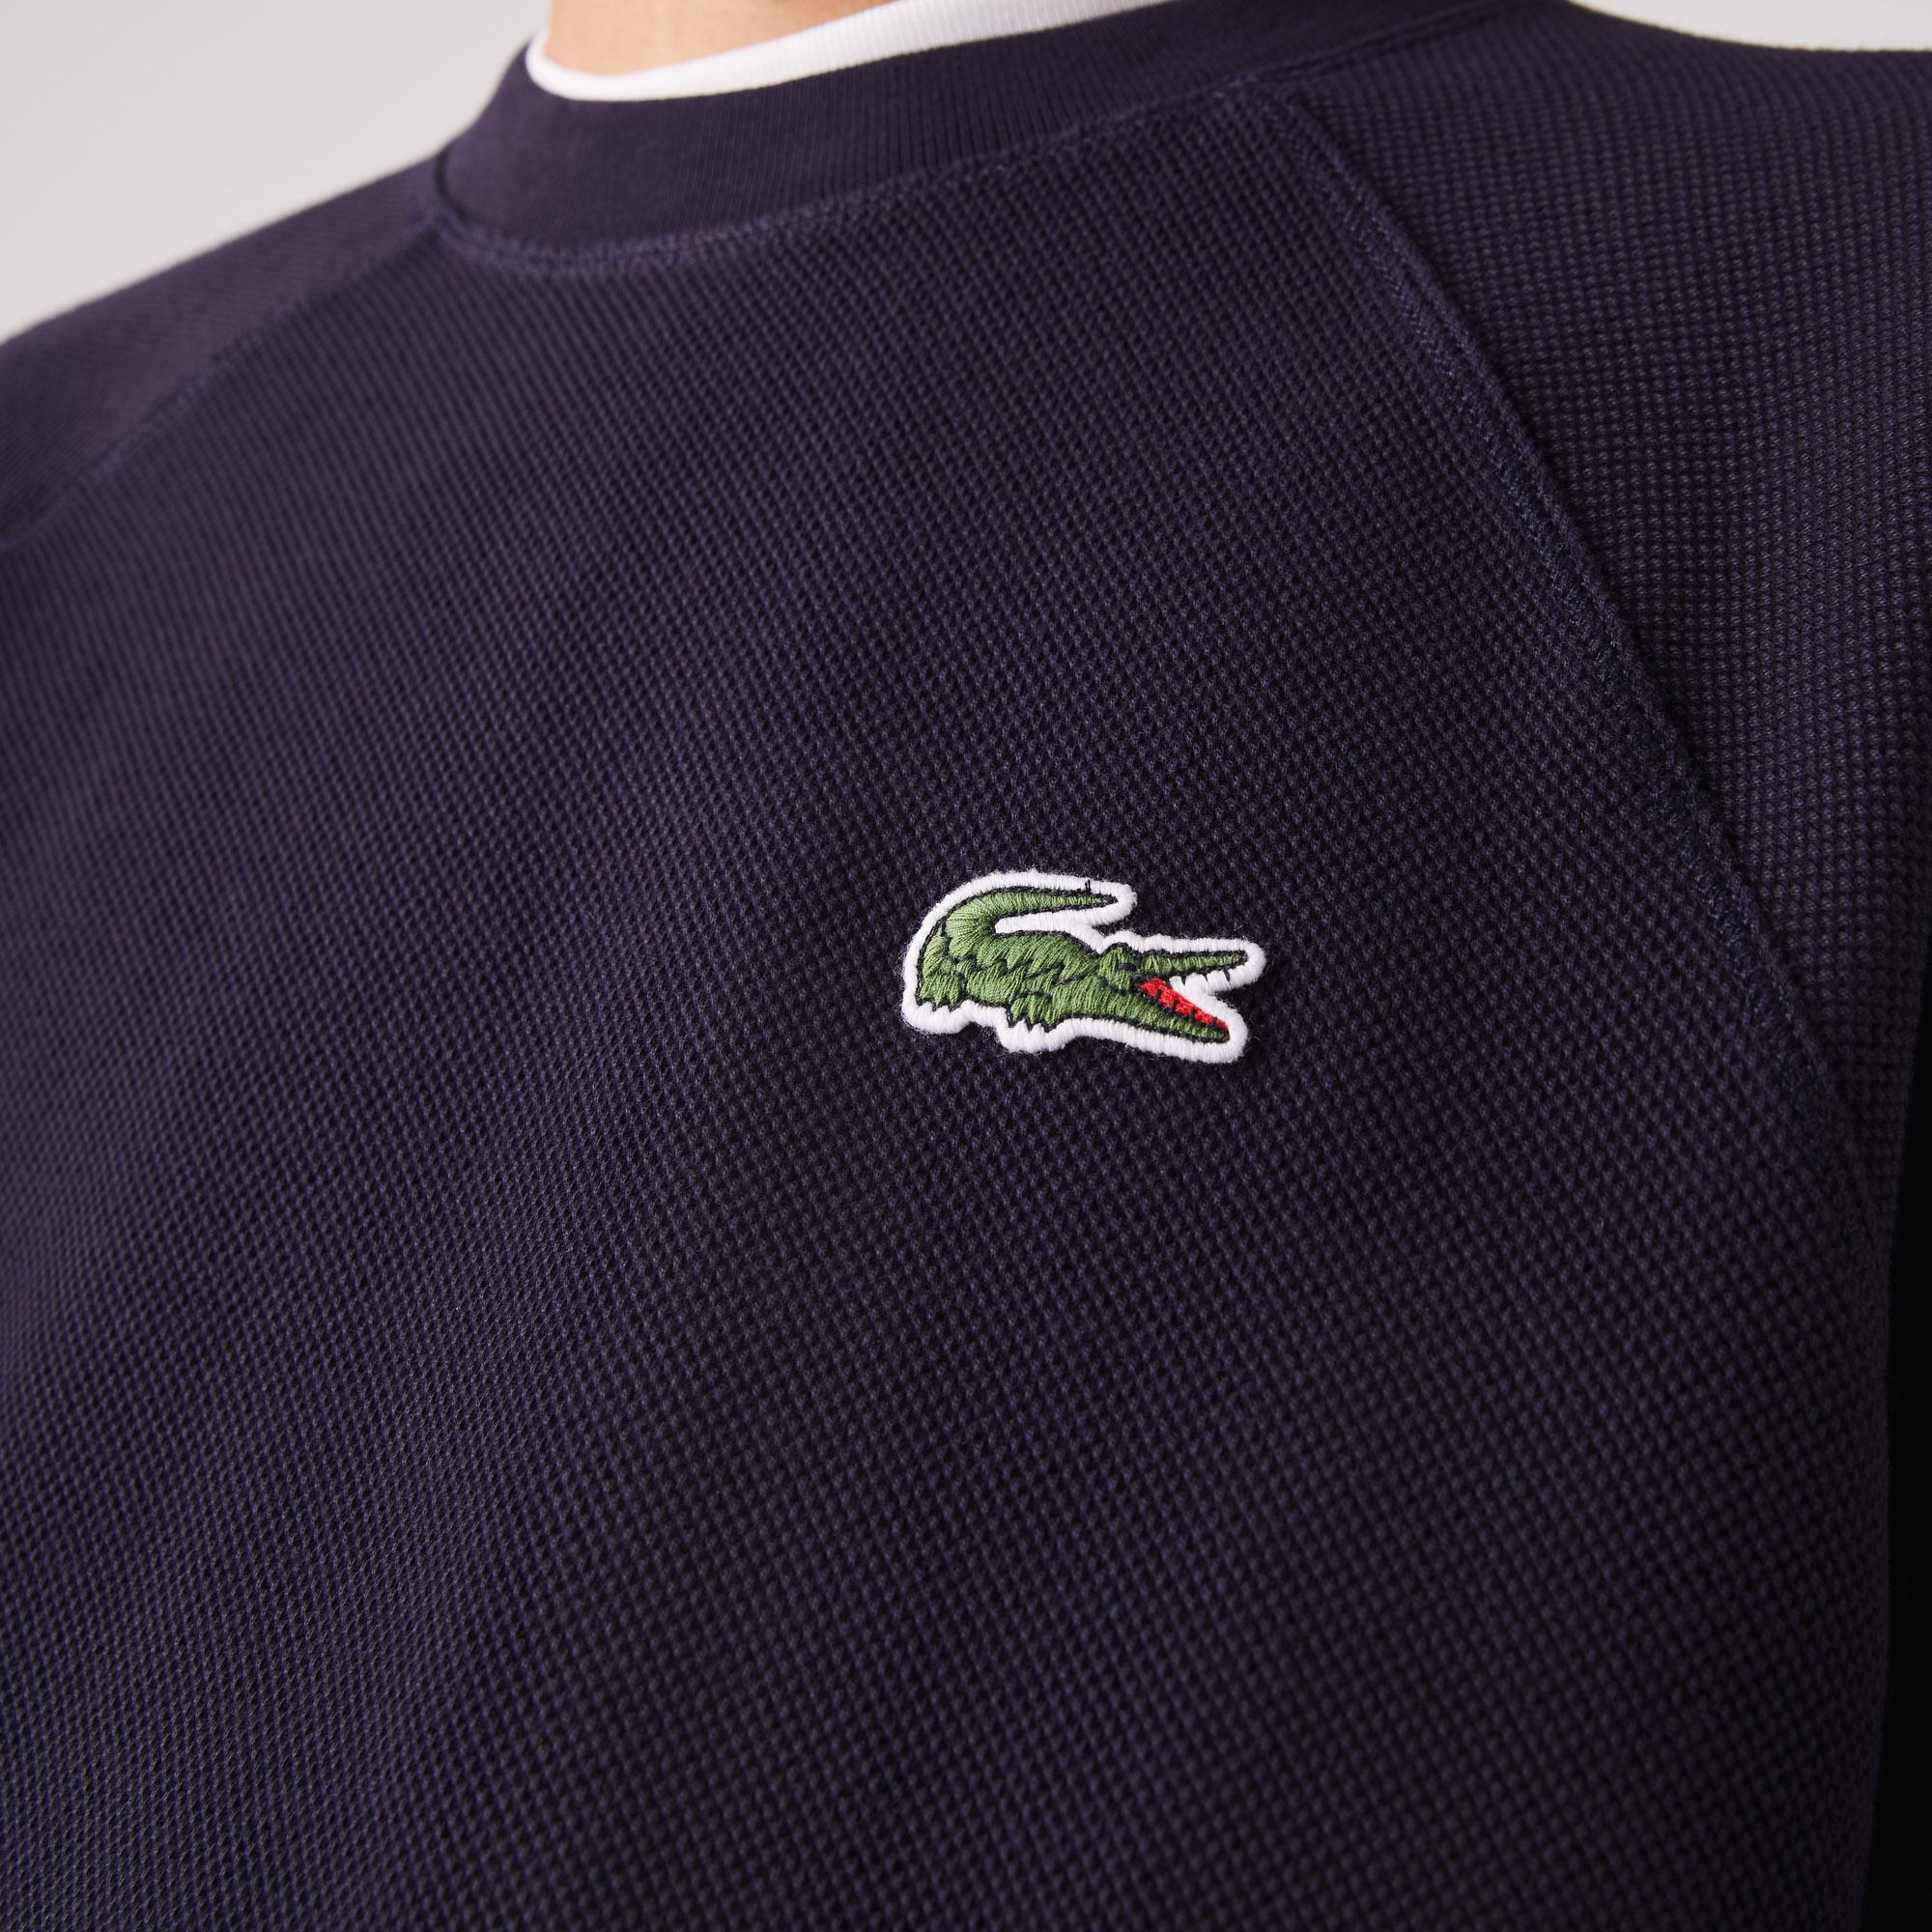 Lacoste Men's Organic Cotton Piqué Crew Neck Sweatshirt